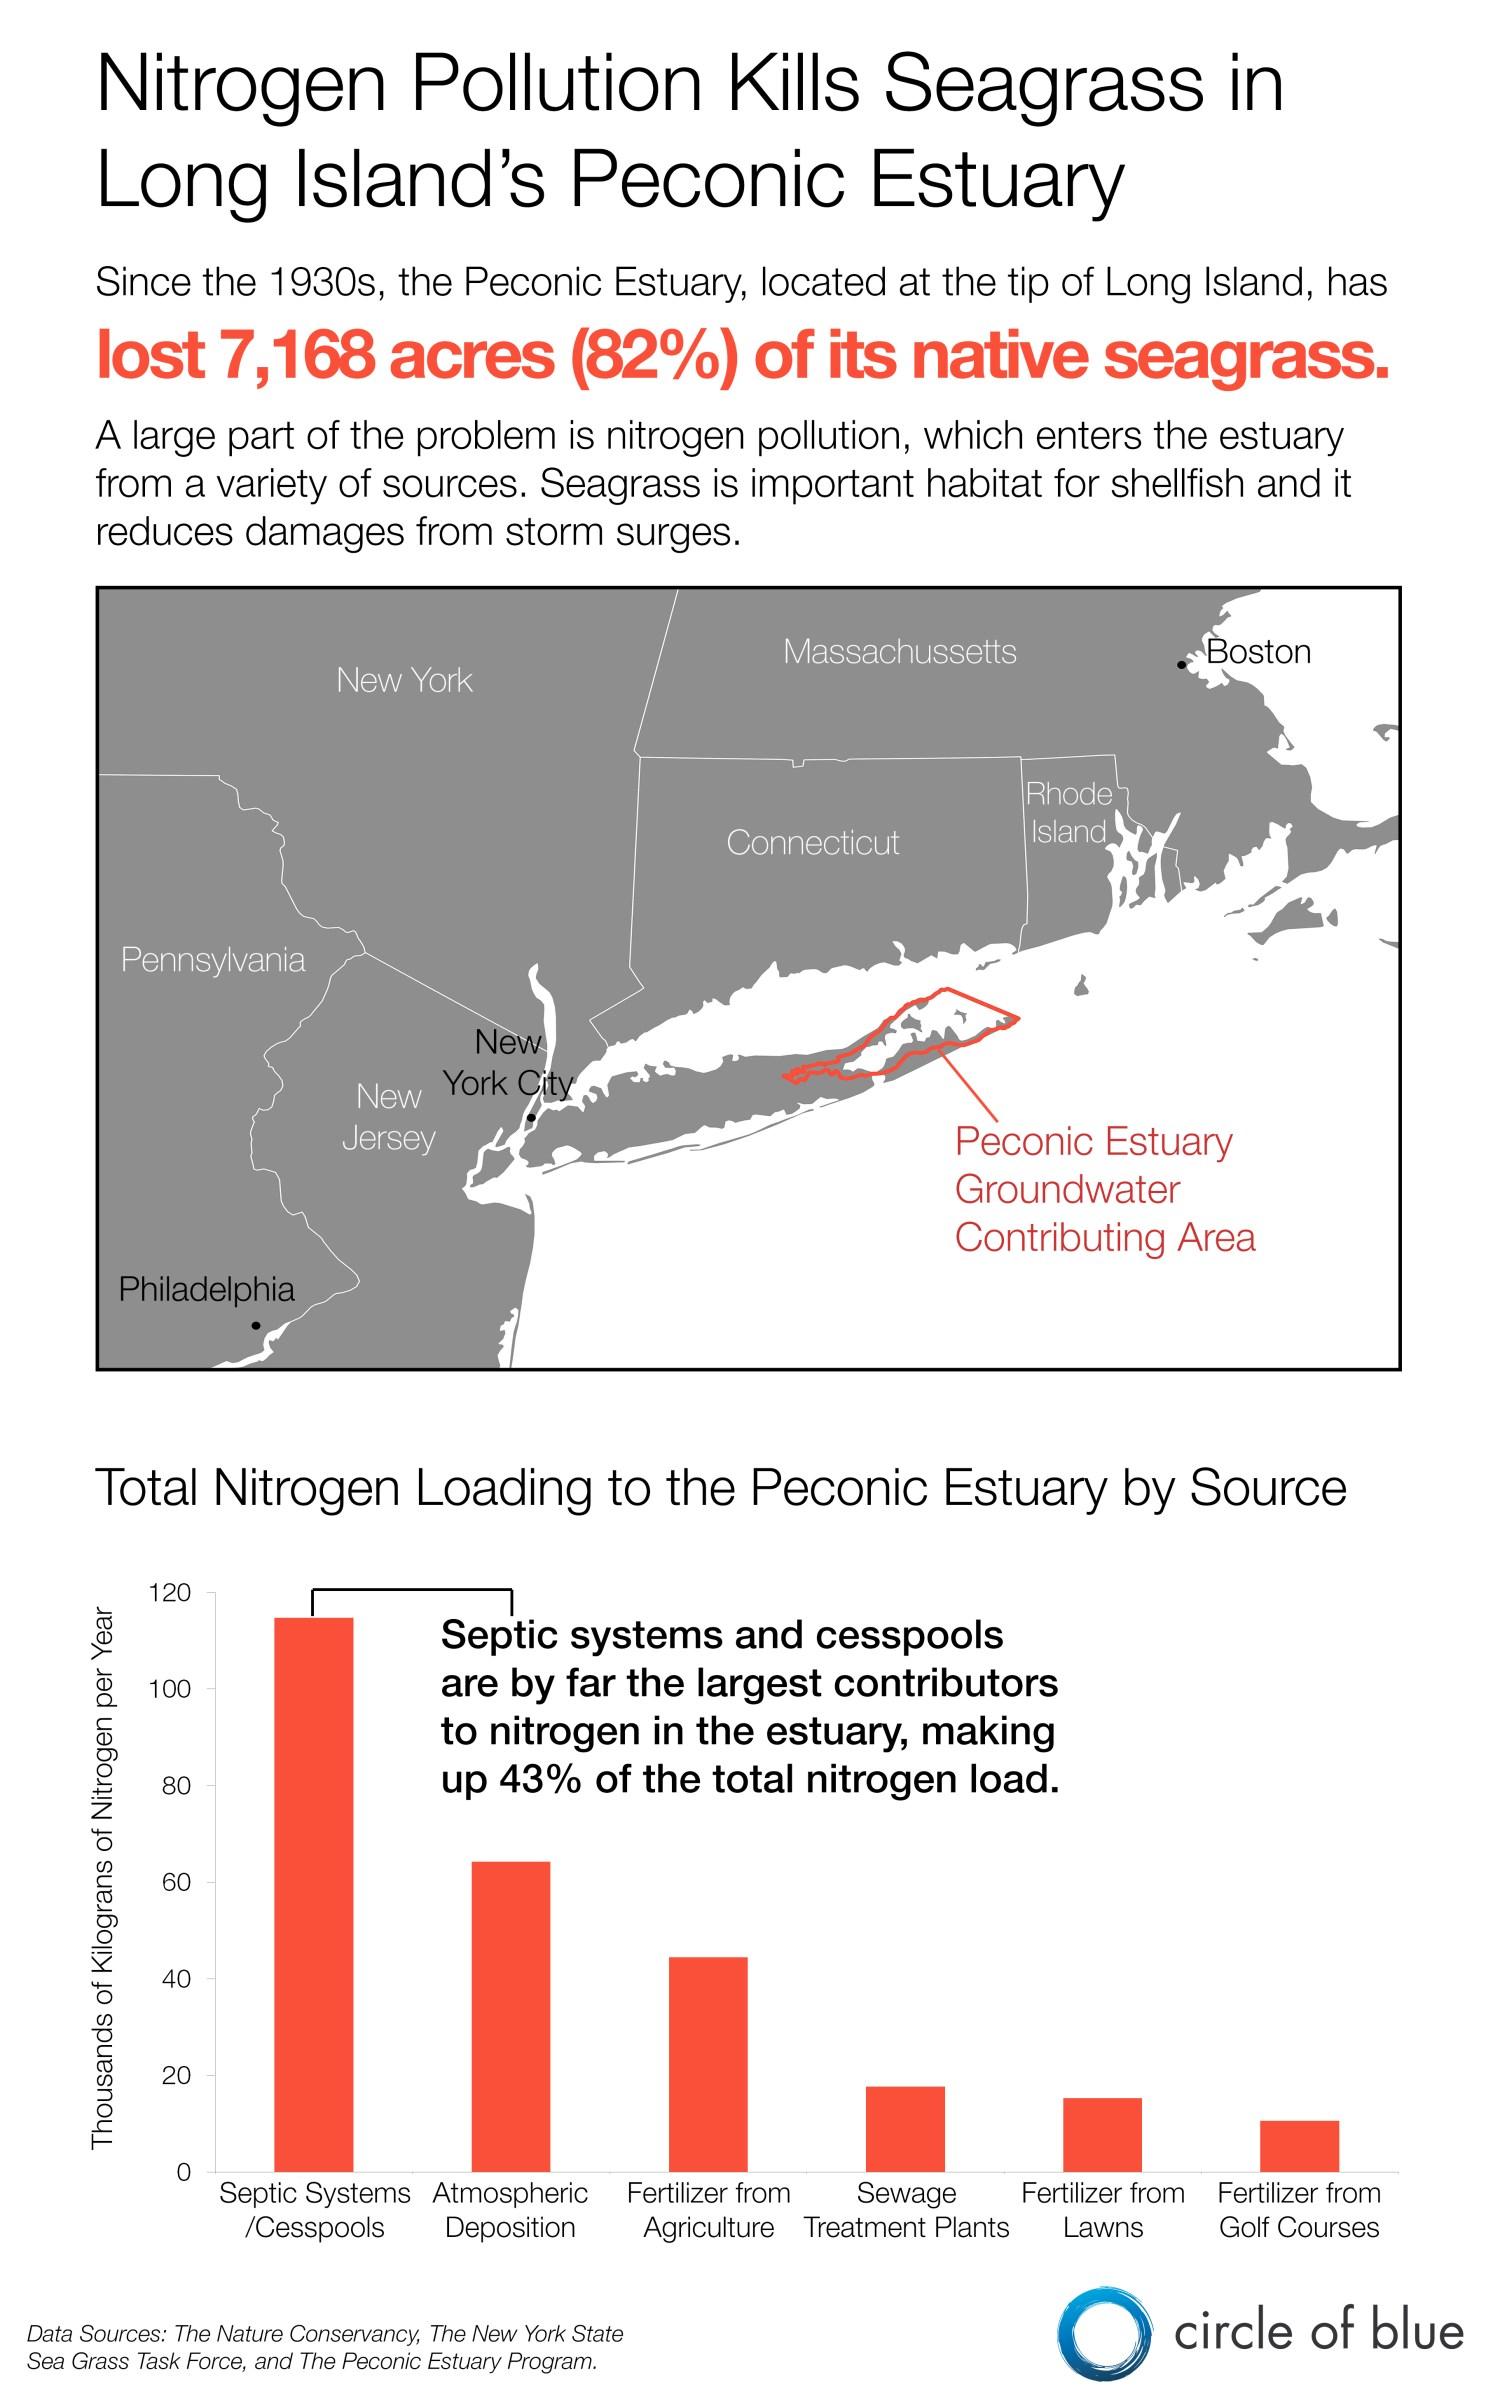 Peconic Bay Long Island seagrass toxic algae nitrogen pollution